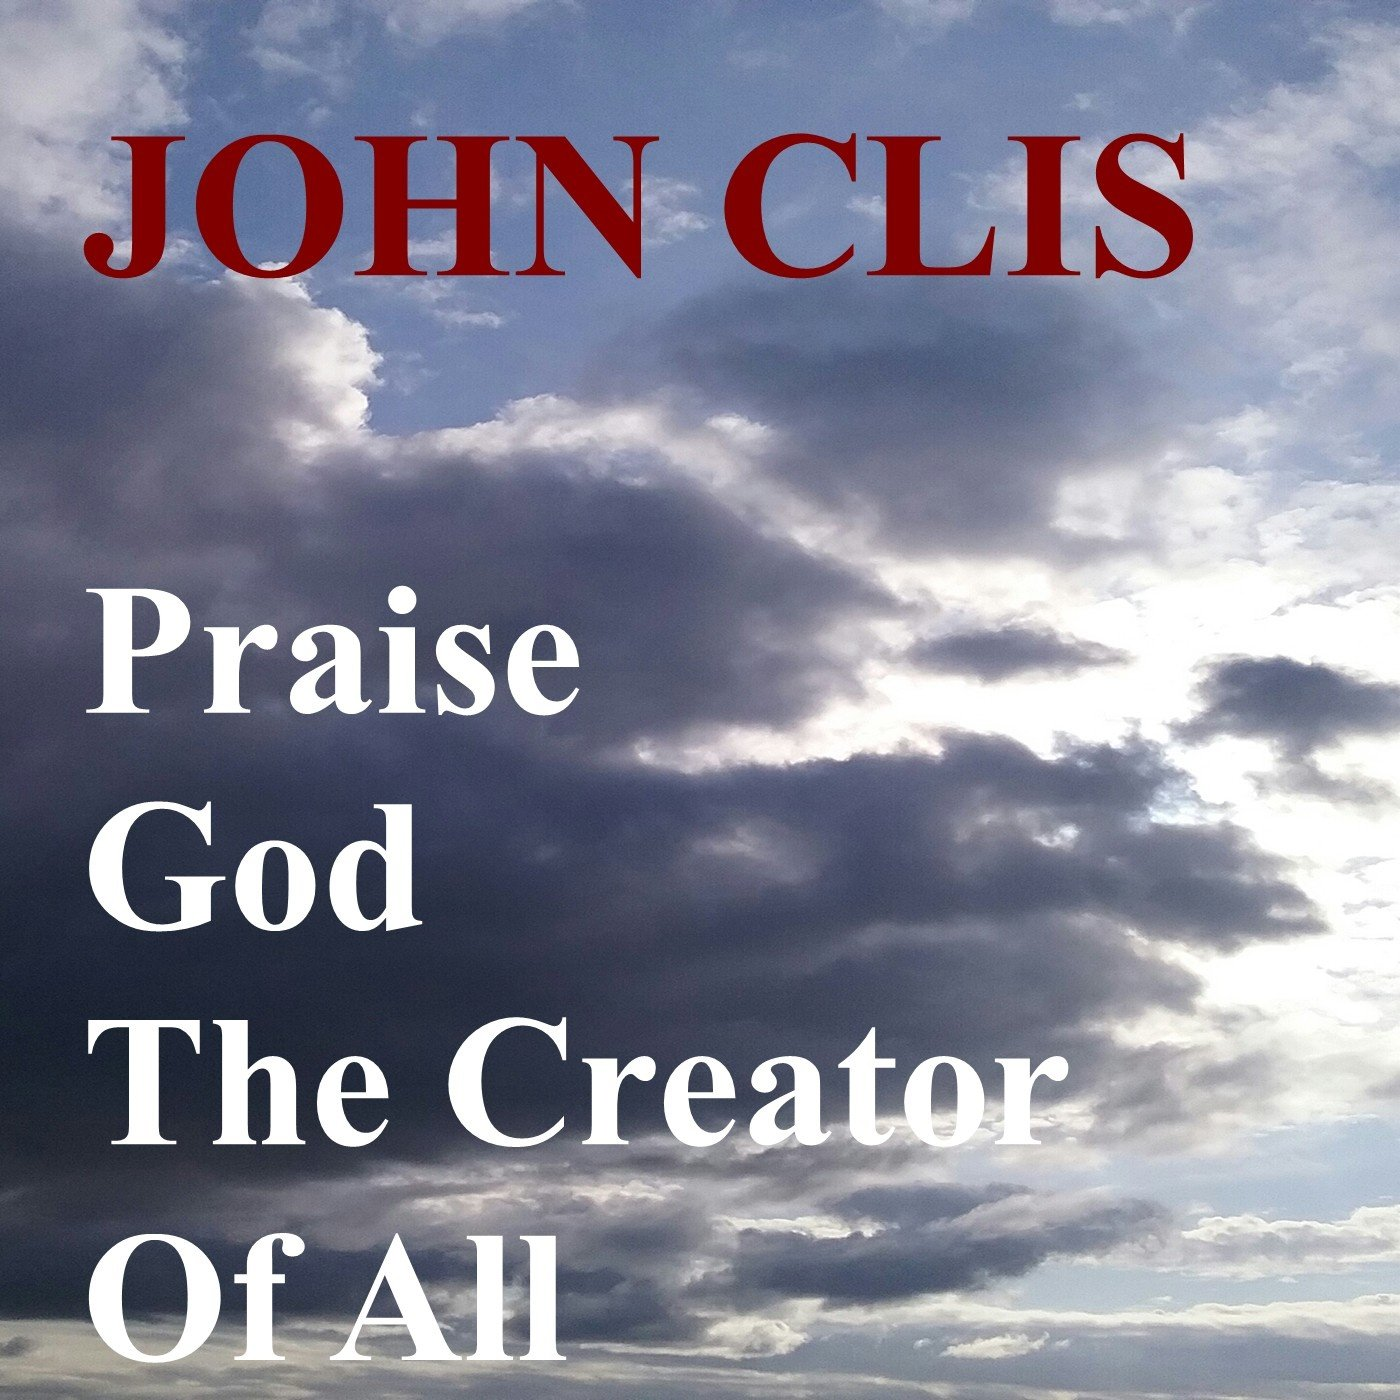 https://0201.nccdn.net/1_2/000/000/0eb/293/John-Clis---Praise-God-The-Creator-Of-All---Picture-1-1400x1400.jpg